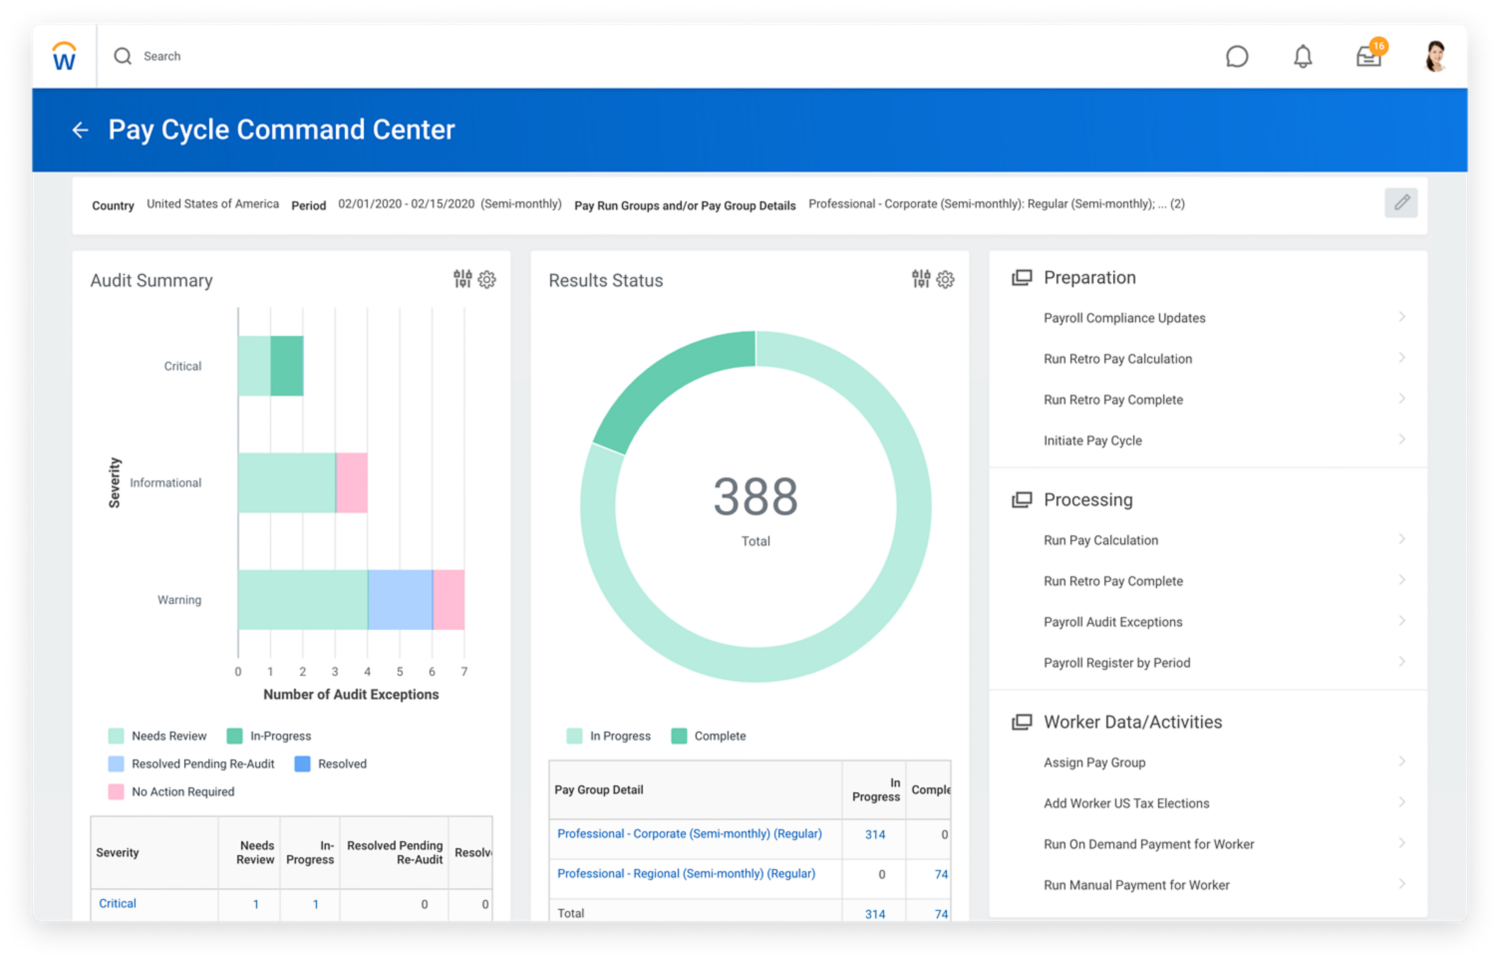 Pay cycle command centre dashboard with graphs for audit summary, results status and accounting summary